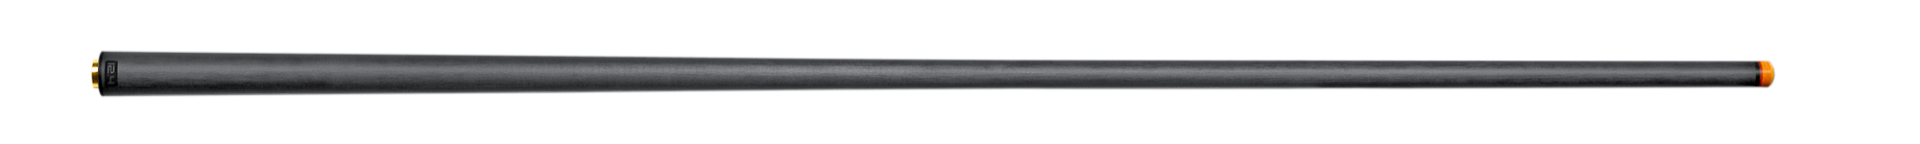 Predator REVO 12.4 mm Pool Cue Shaft for Uni-Loc Joint - Black Vault Plate - Blatt Billiards